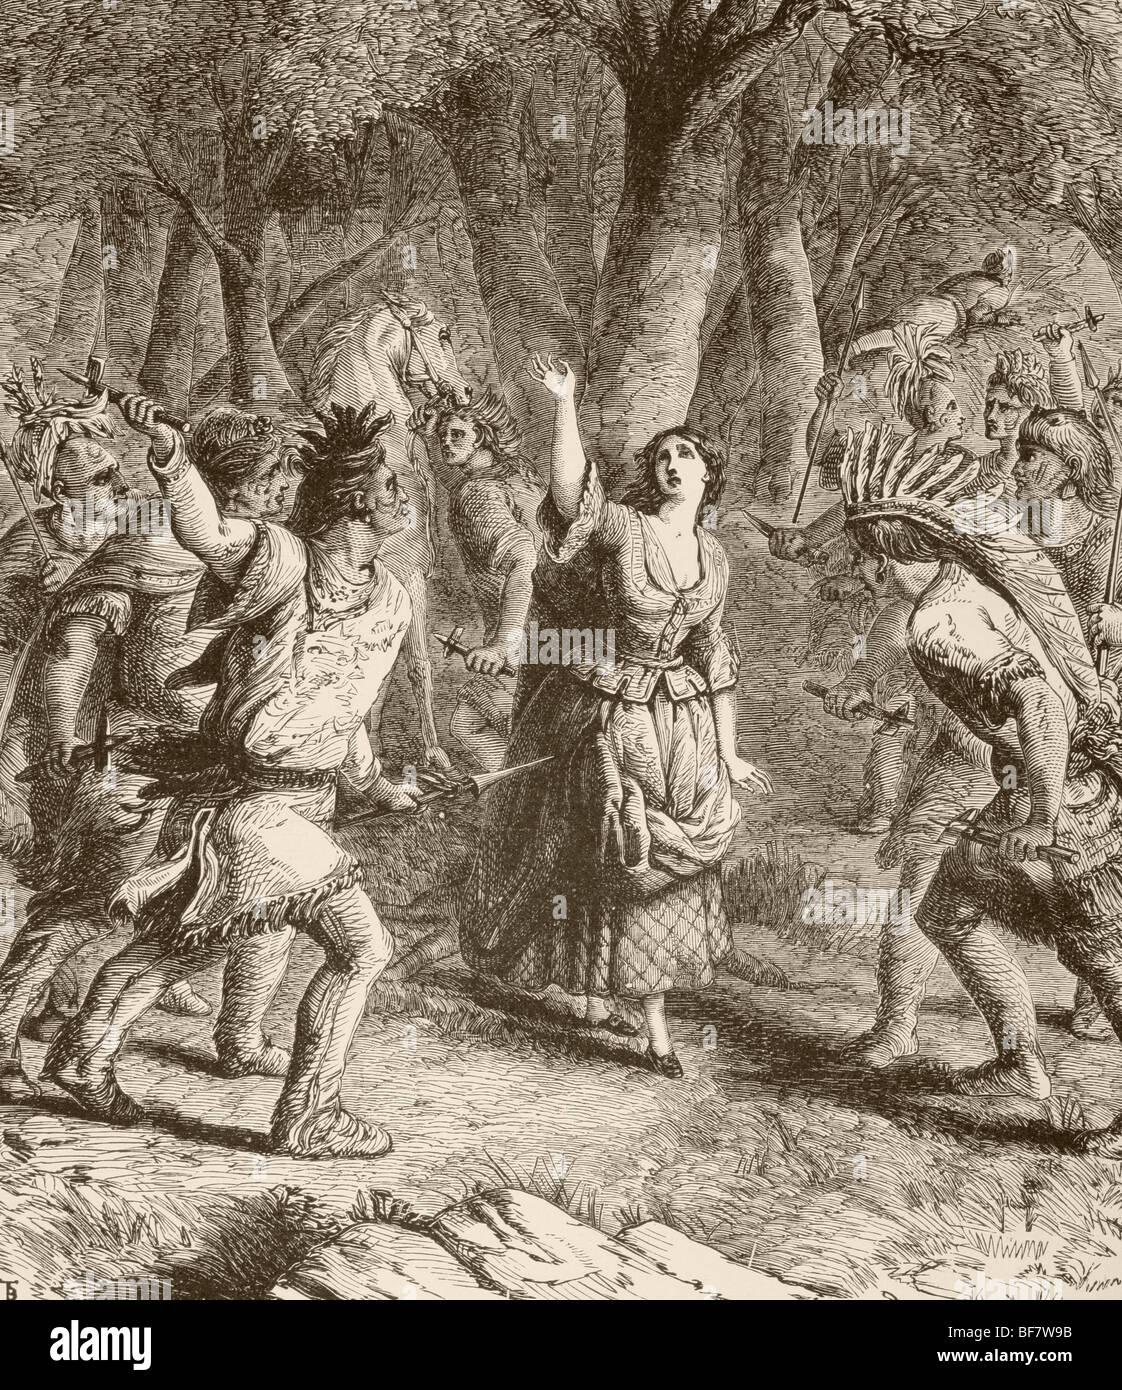 The abduction of Jennie aka Jane McRae by Indians in 1777 during the Revolutinary War - Stock Image